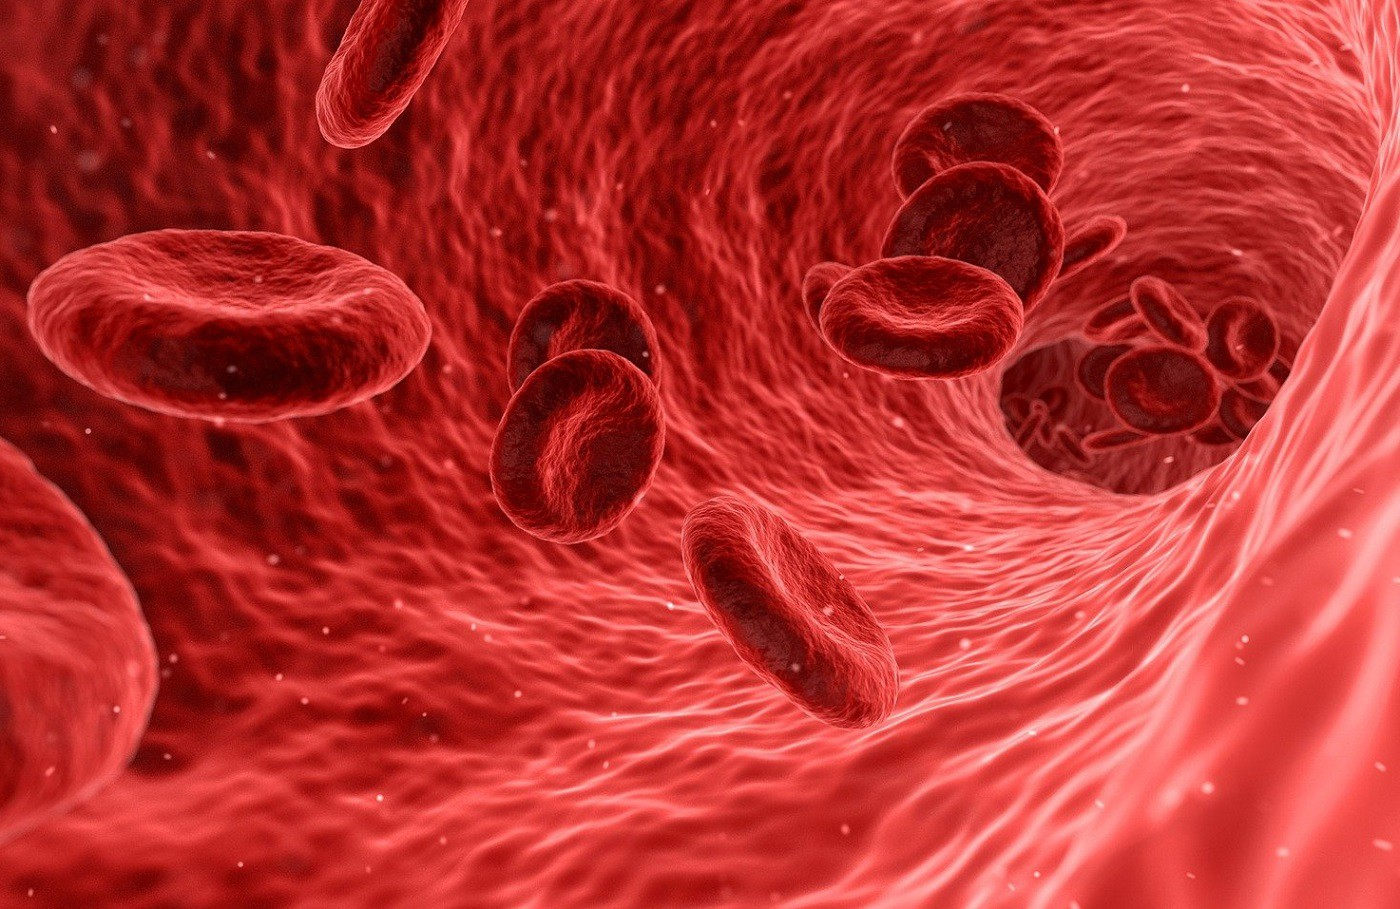 Photo on blood cells in the bloodstream relating to COVID-19 infection based on blood type.